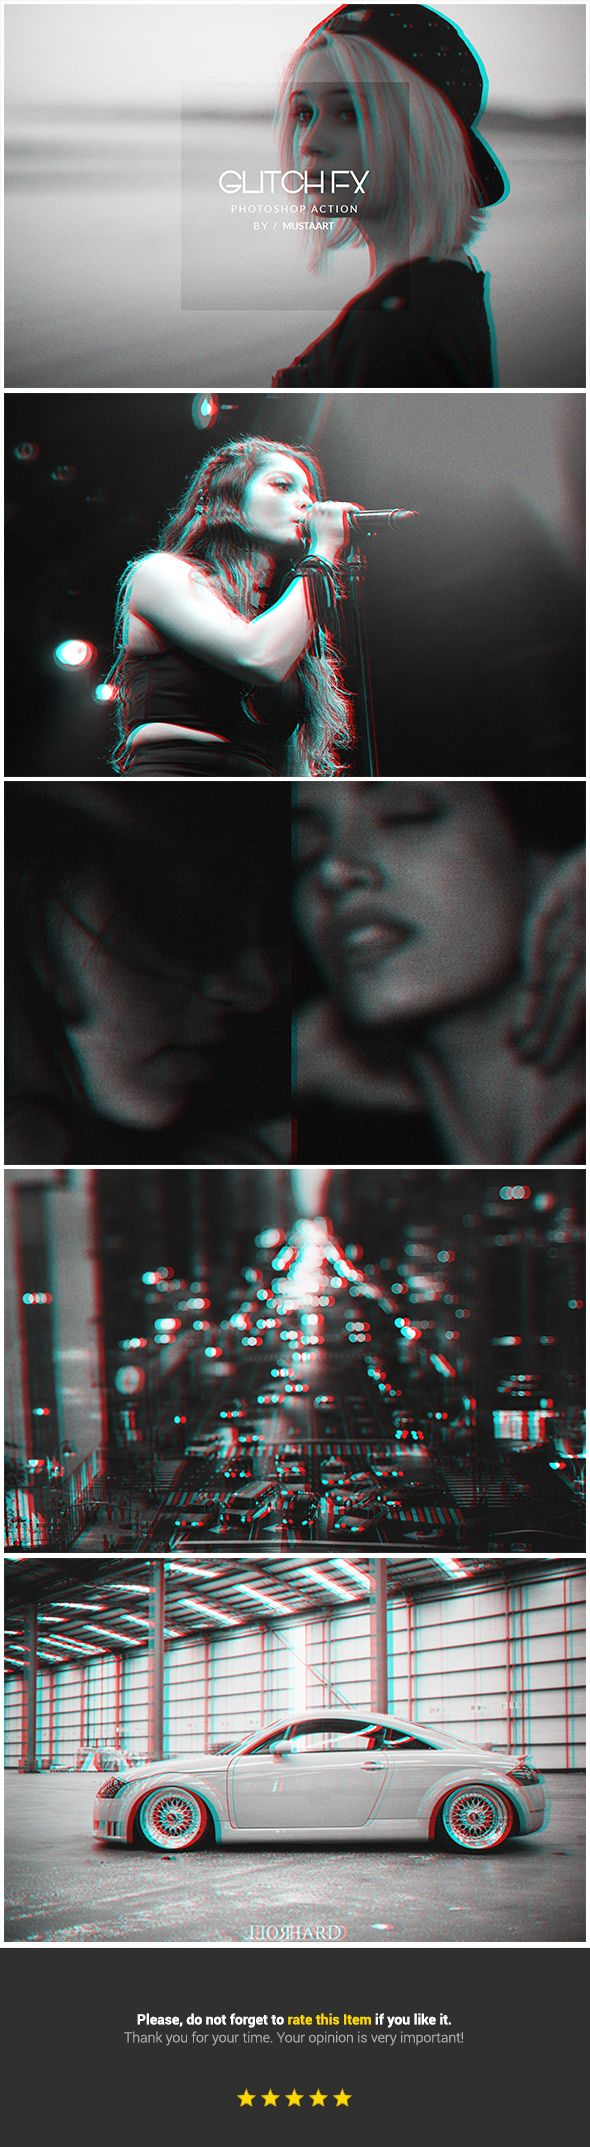 Glitch FX - Photo Effects Actions